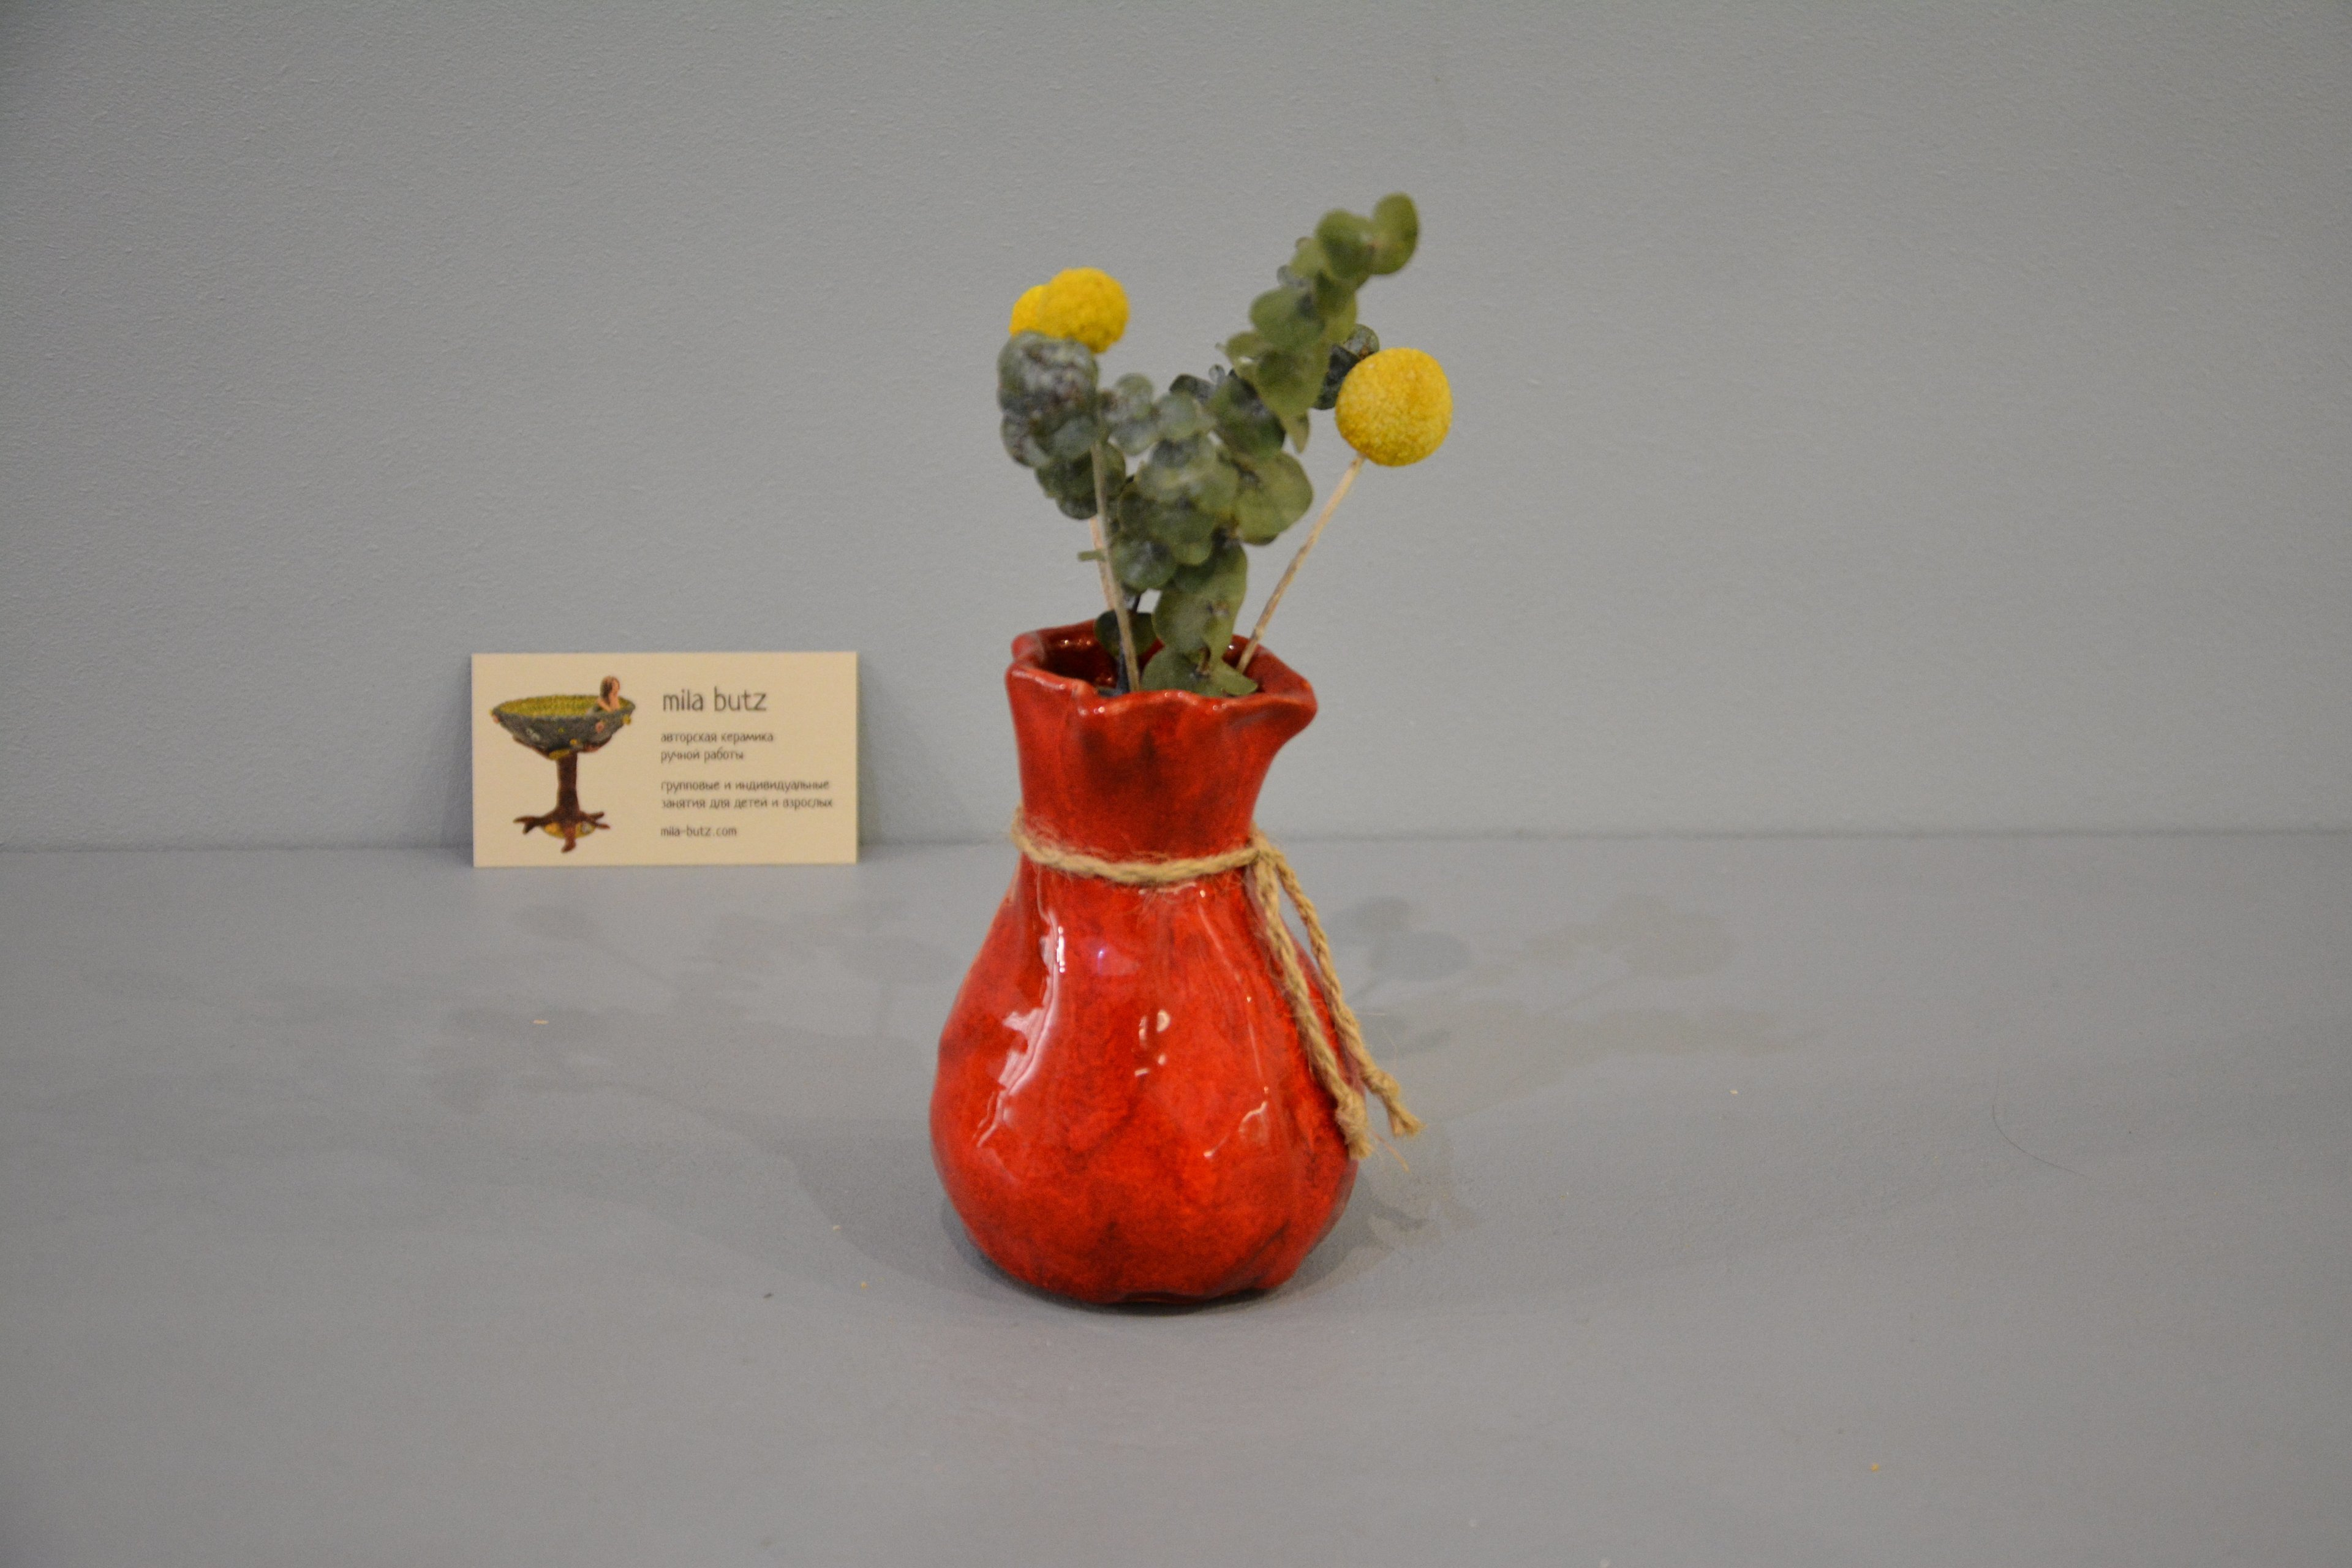 Small Vase or flowers «Red Bagful», height - 12 cm, color - red. Photo 1428.